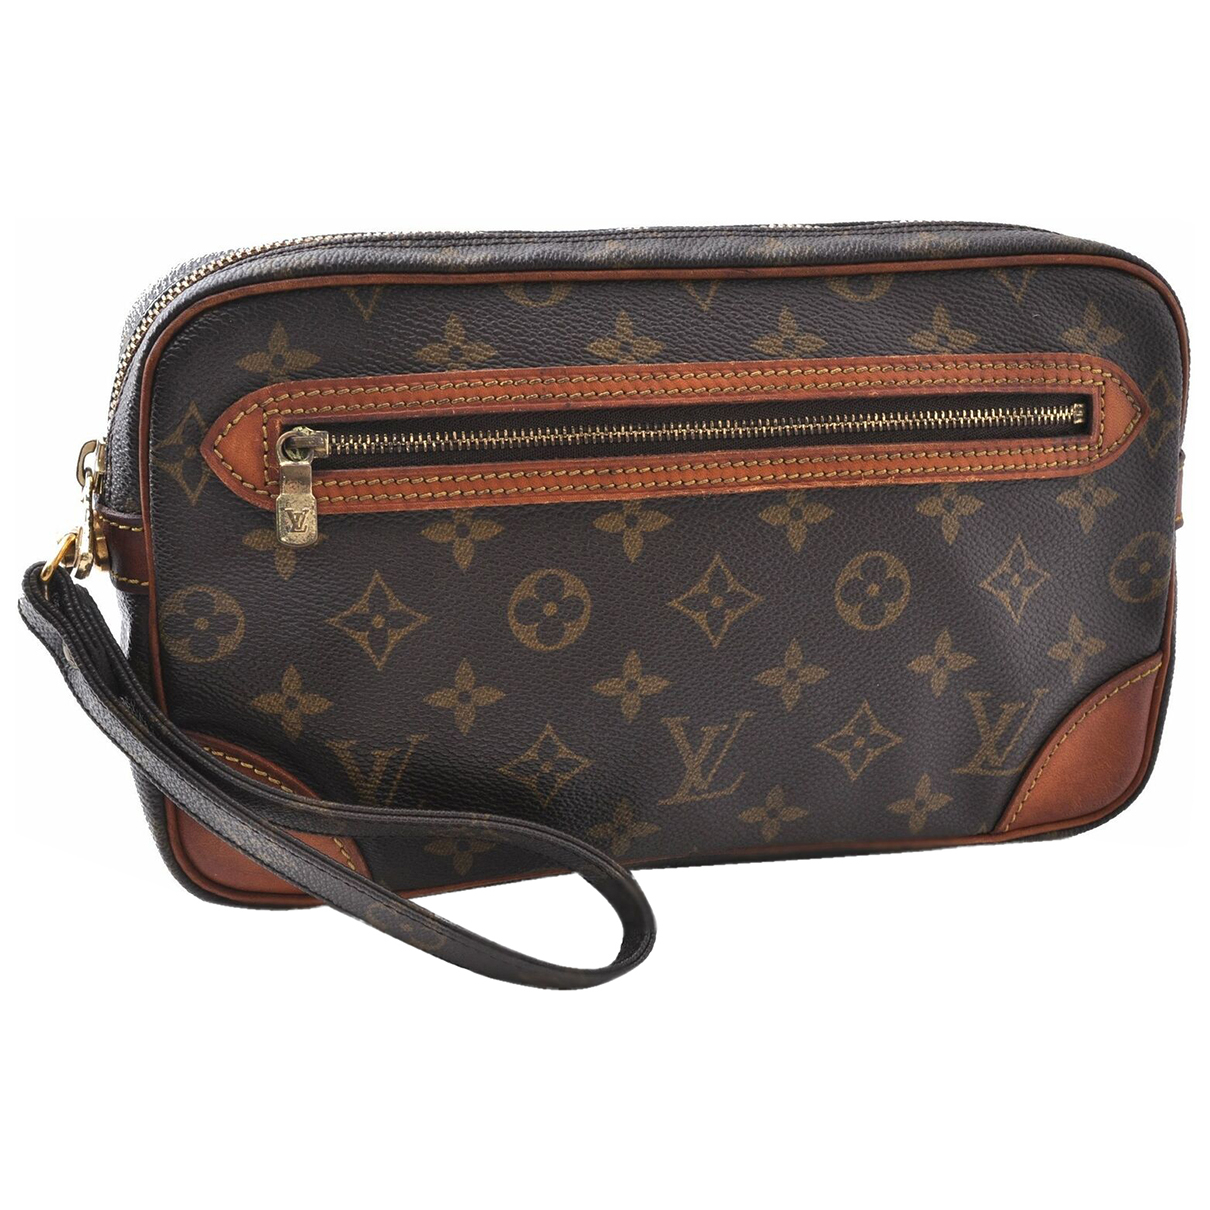 Pochette de Lona Louis Vuitton